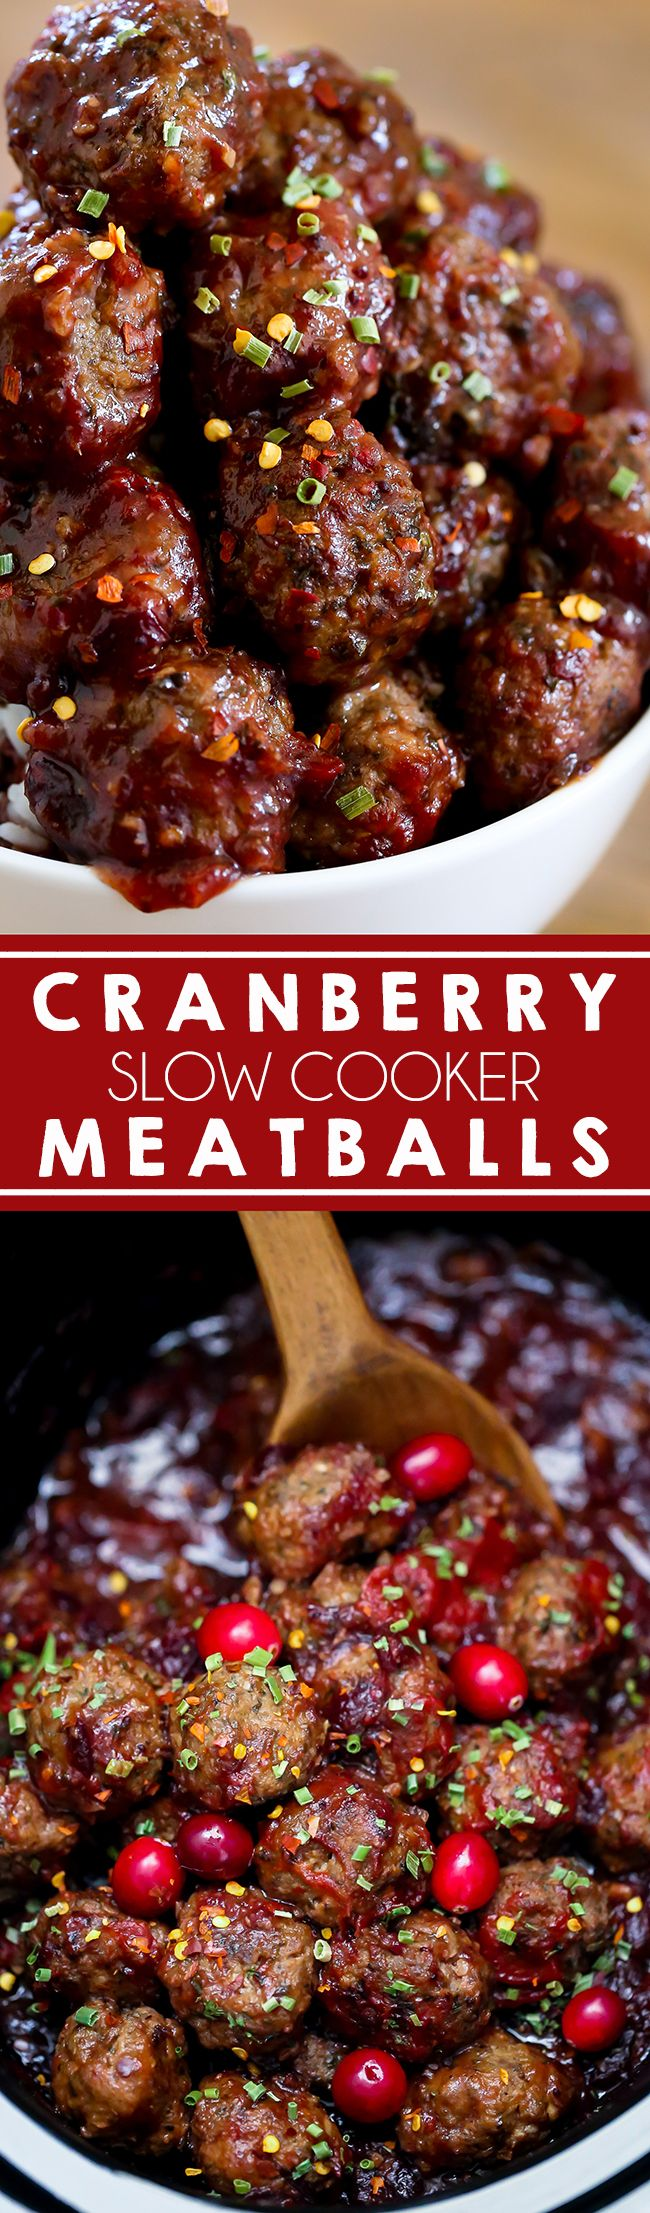 Slow Cooker Cranberry Meatballs - Homemade Italian meatballs slow cooked in a sw...